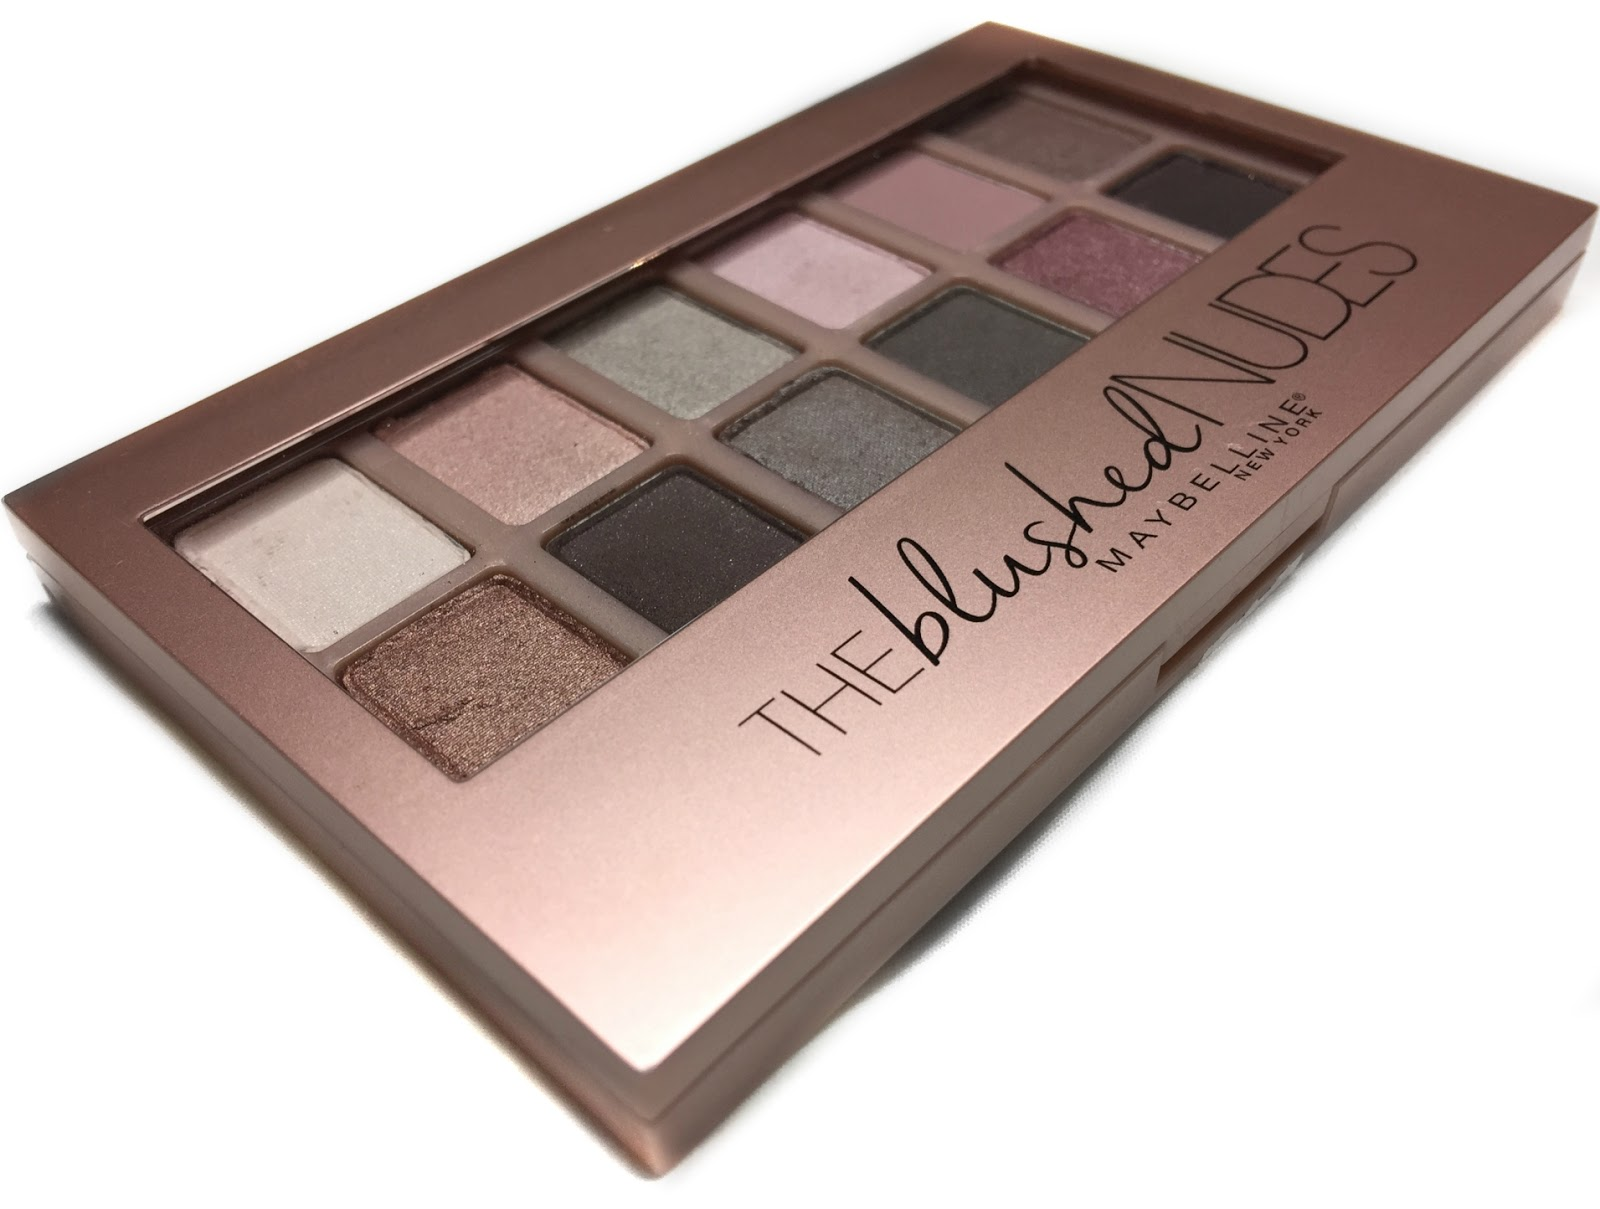 Review Maybelline The Blushed Nudes Eyeshadow Palette -4350